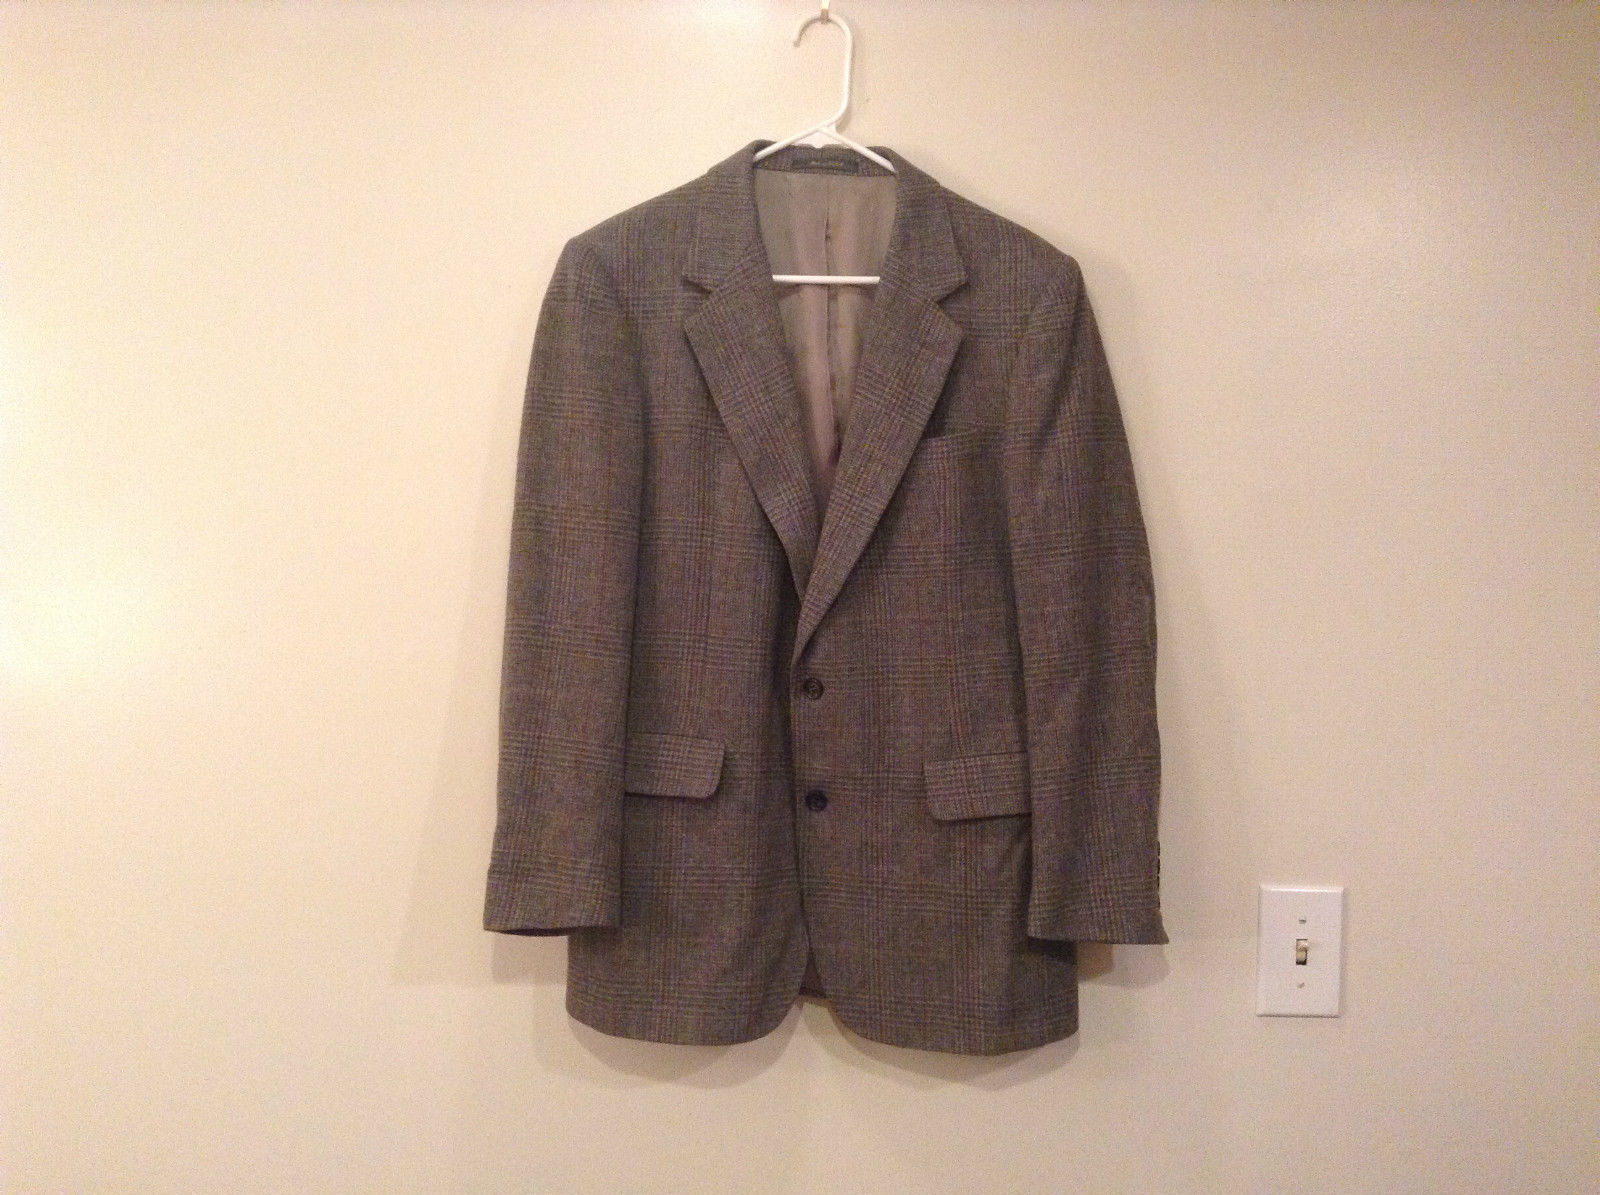 Stackpole Moore Tryon Gray with Plaid Pattern Suit Jacket Sport Coat No Size Tag